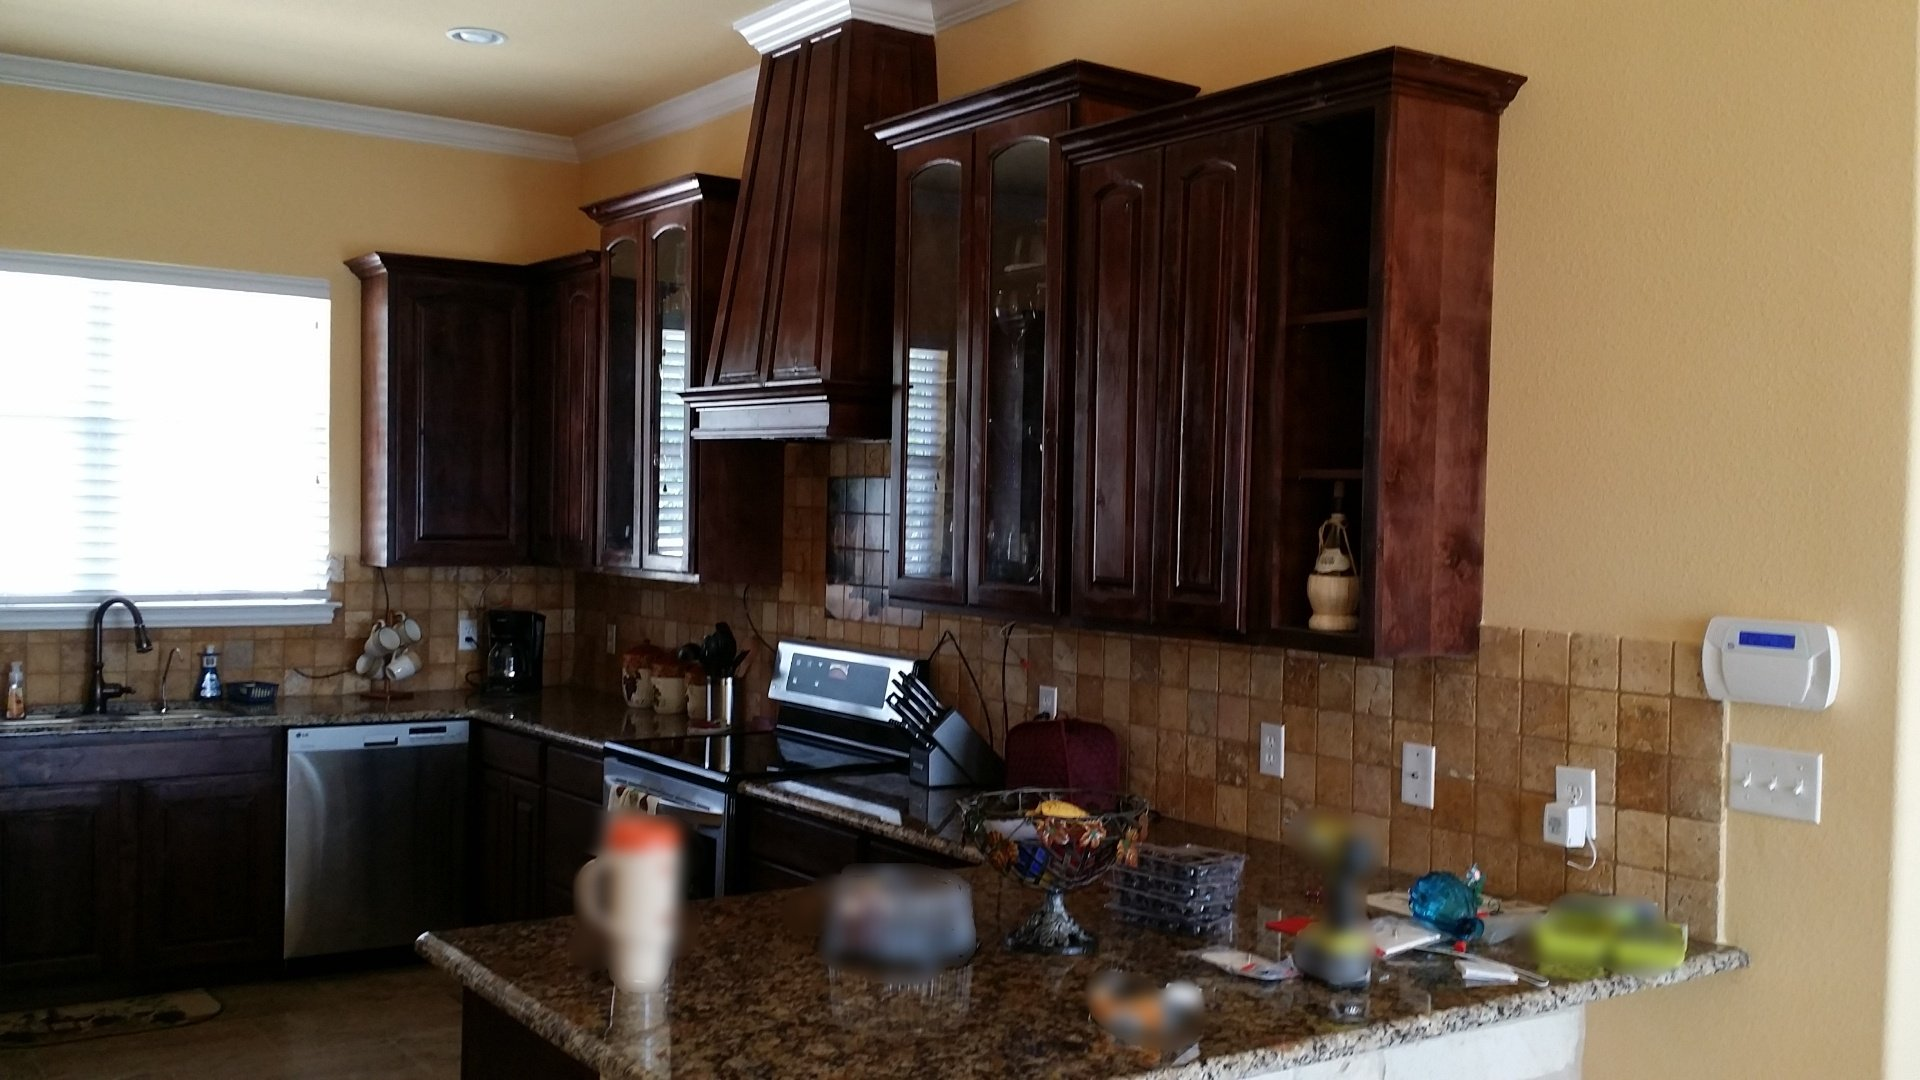 Cabinets feature Red Oak Arched Raised Panels with Red Chestnut Stain, soft close door  hinges and soft close full extension drawer slides.